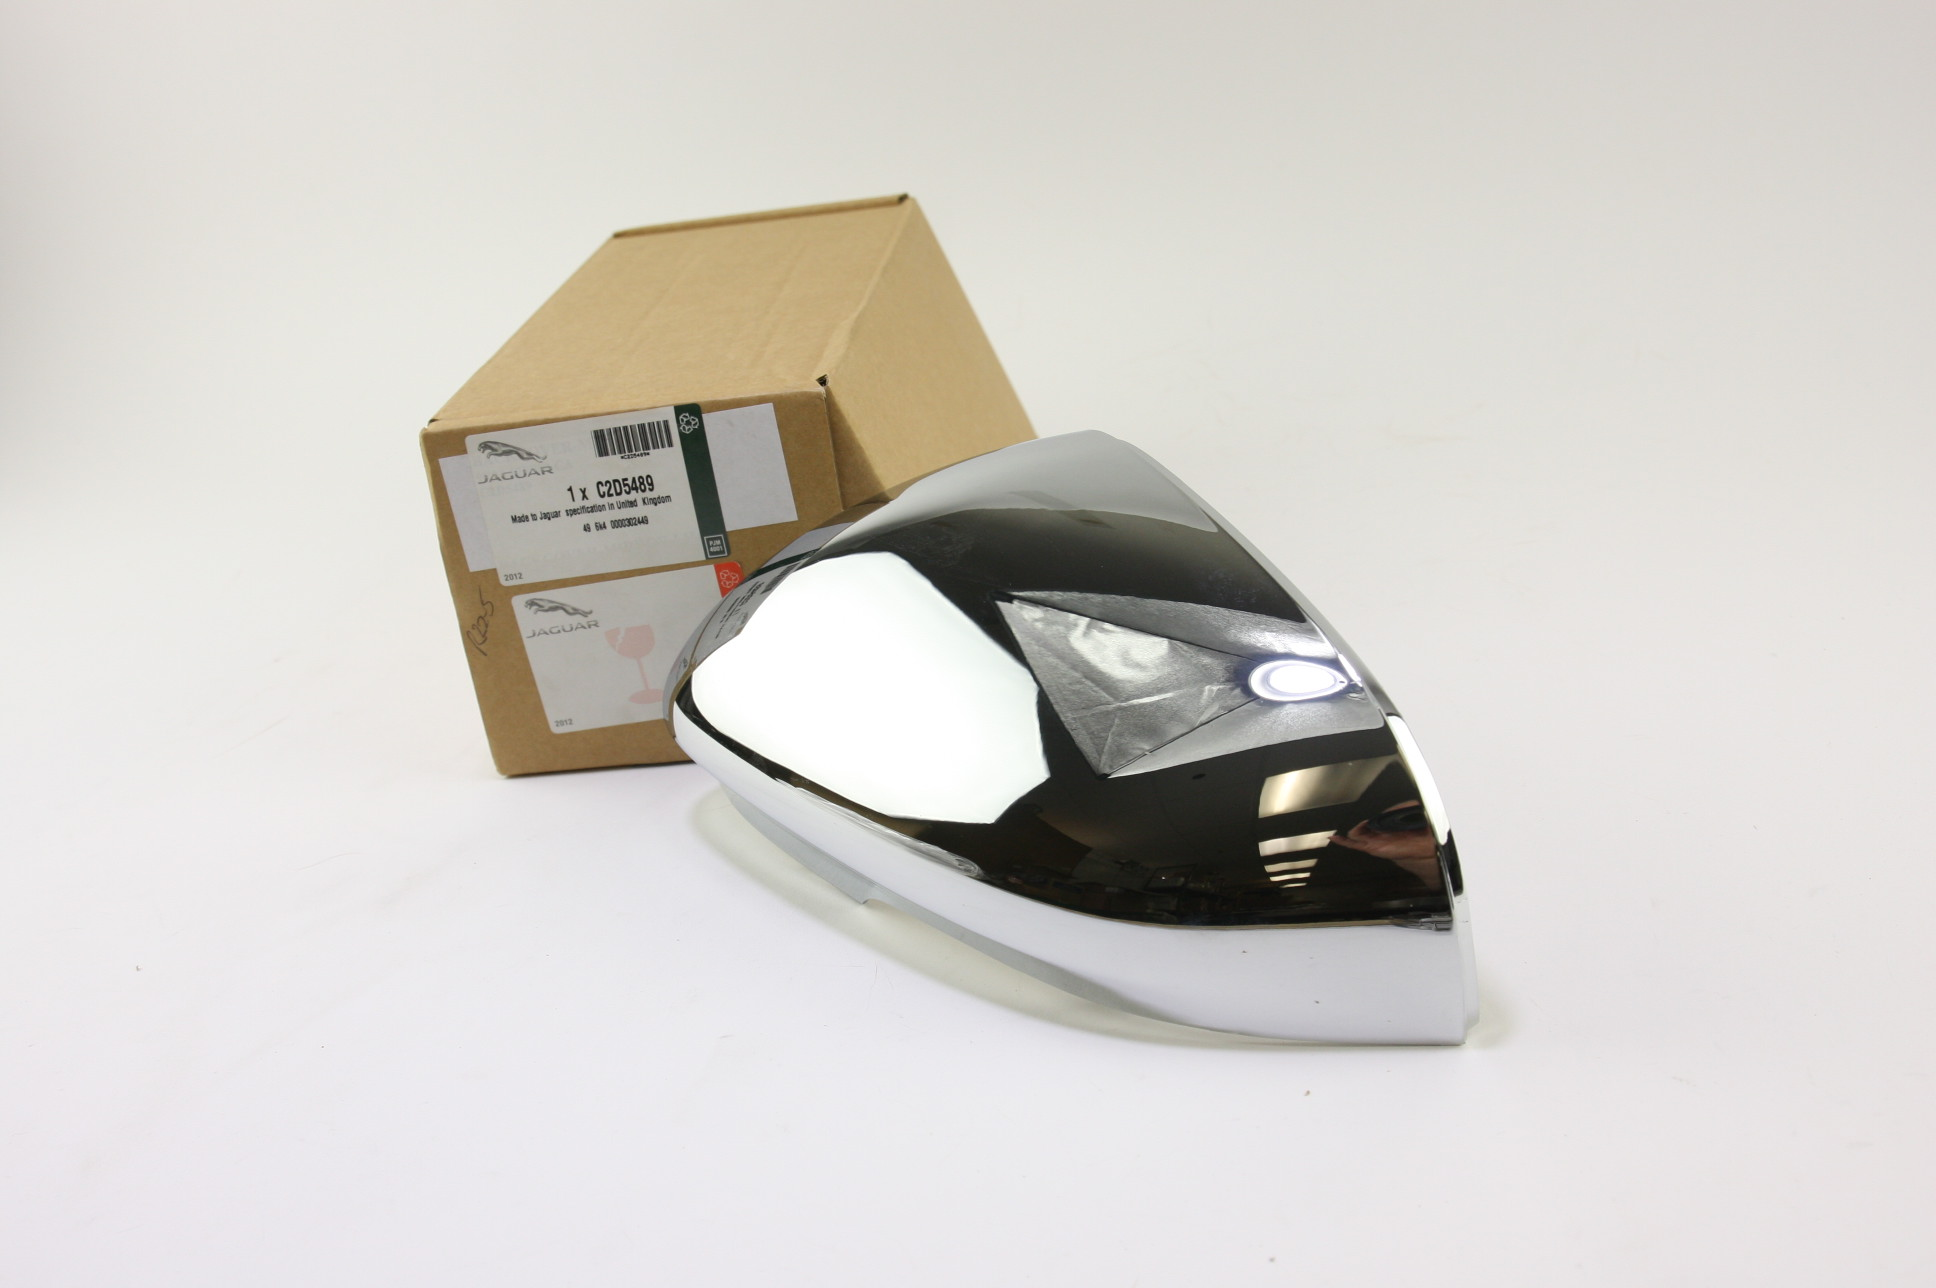 * New OEM C2D5489 Genuine Jaguar Driver Left Side Door Mirror Back Cover Chrome - image 1